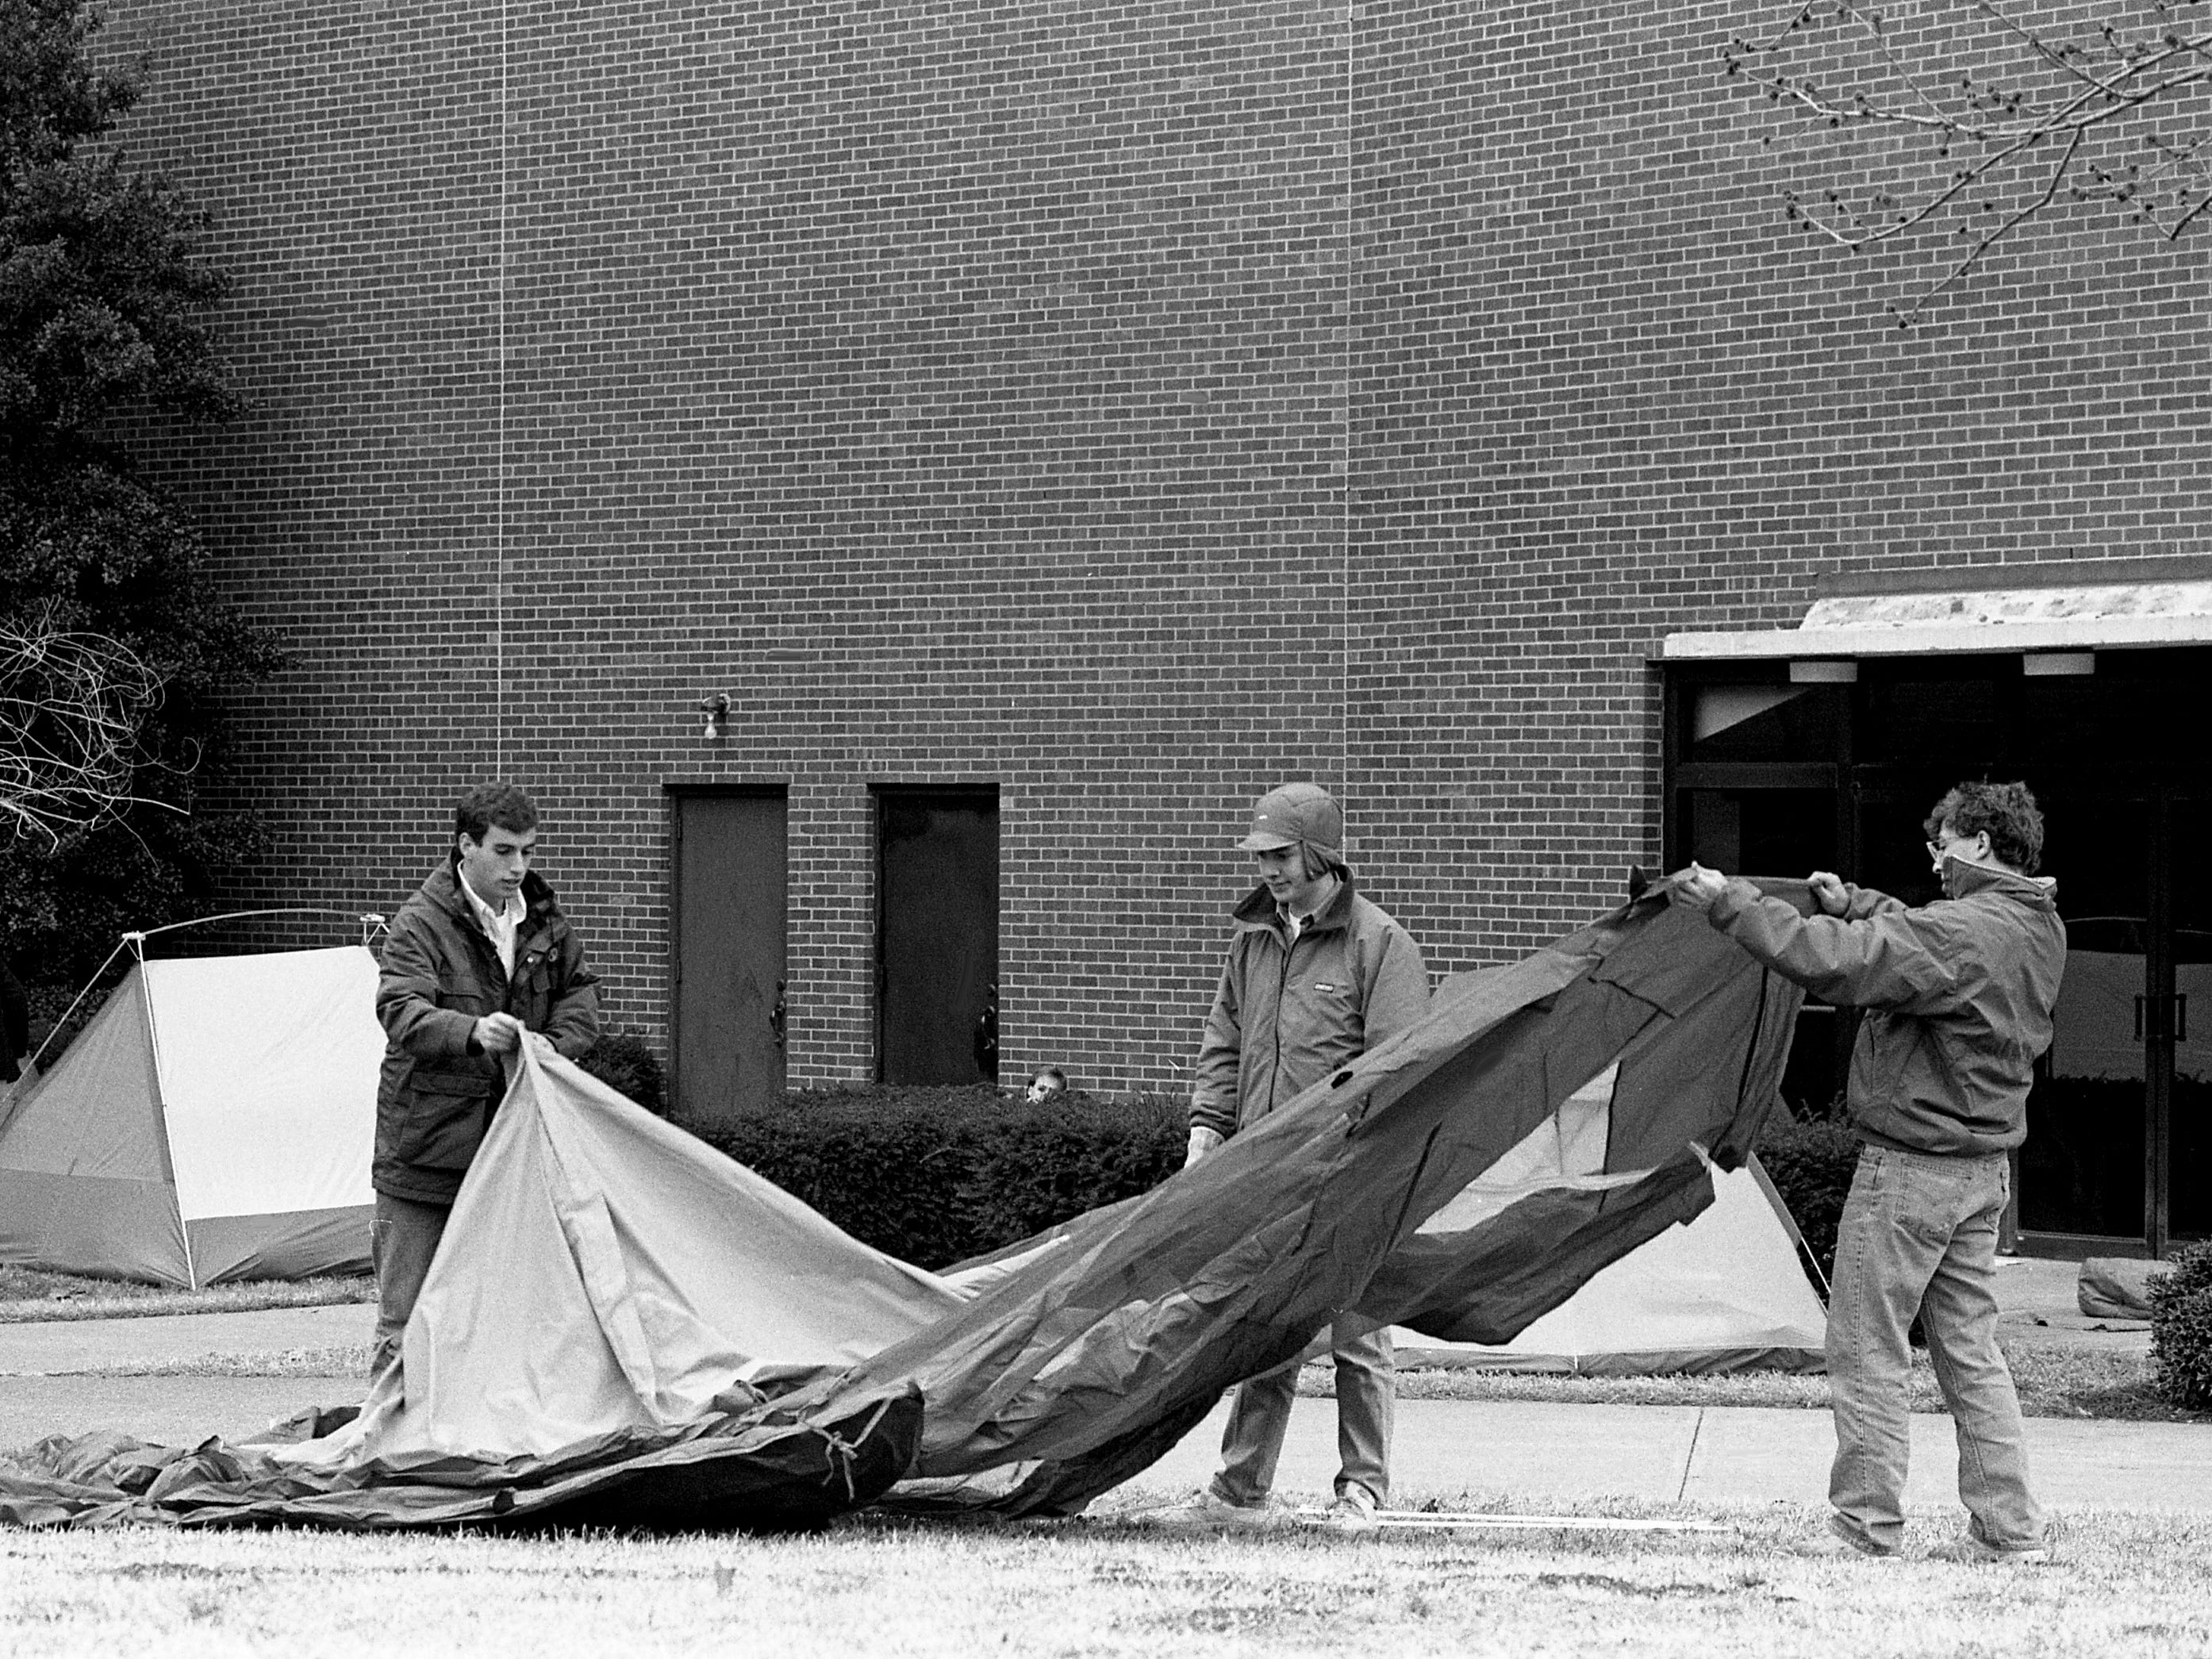 Neither rain nor sleet Feb. 4, 1989, could keep these basketball fans from pitching tents along with rolling out sleeping bags to wait for tickets for the Vanderbilt vs. Kentucky game to go on sale the next day.